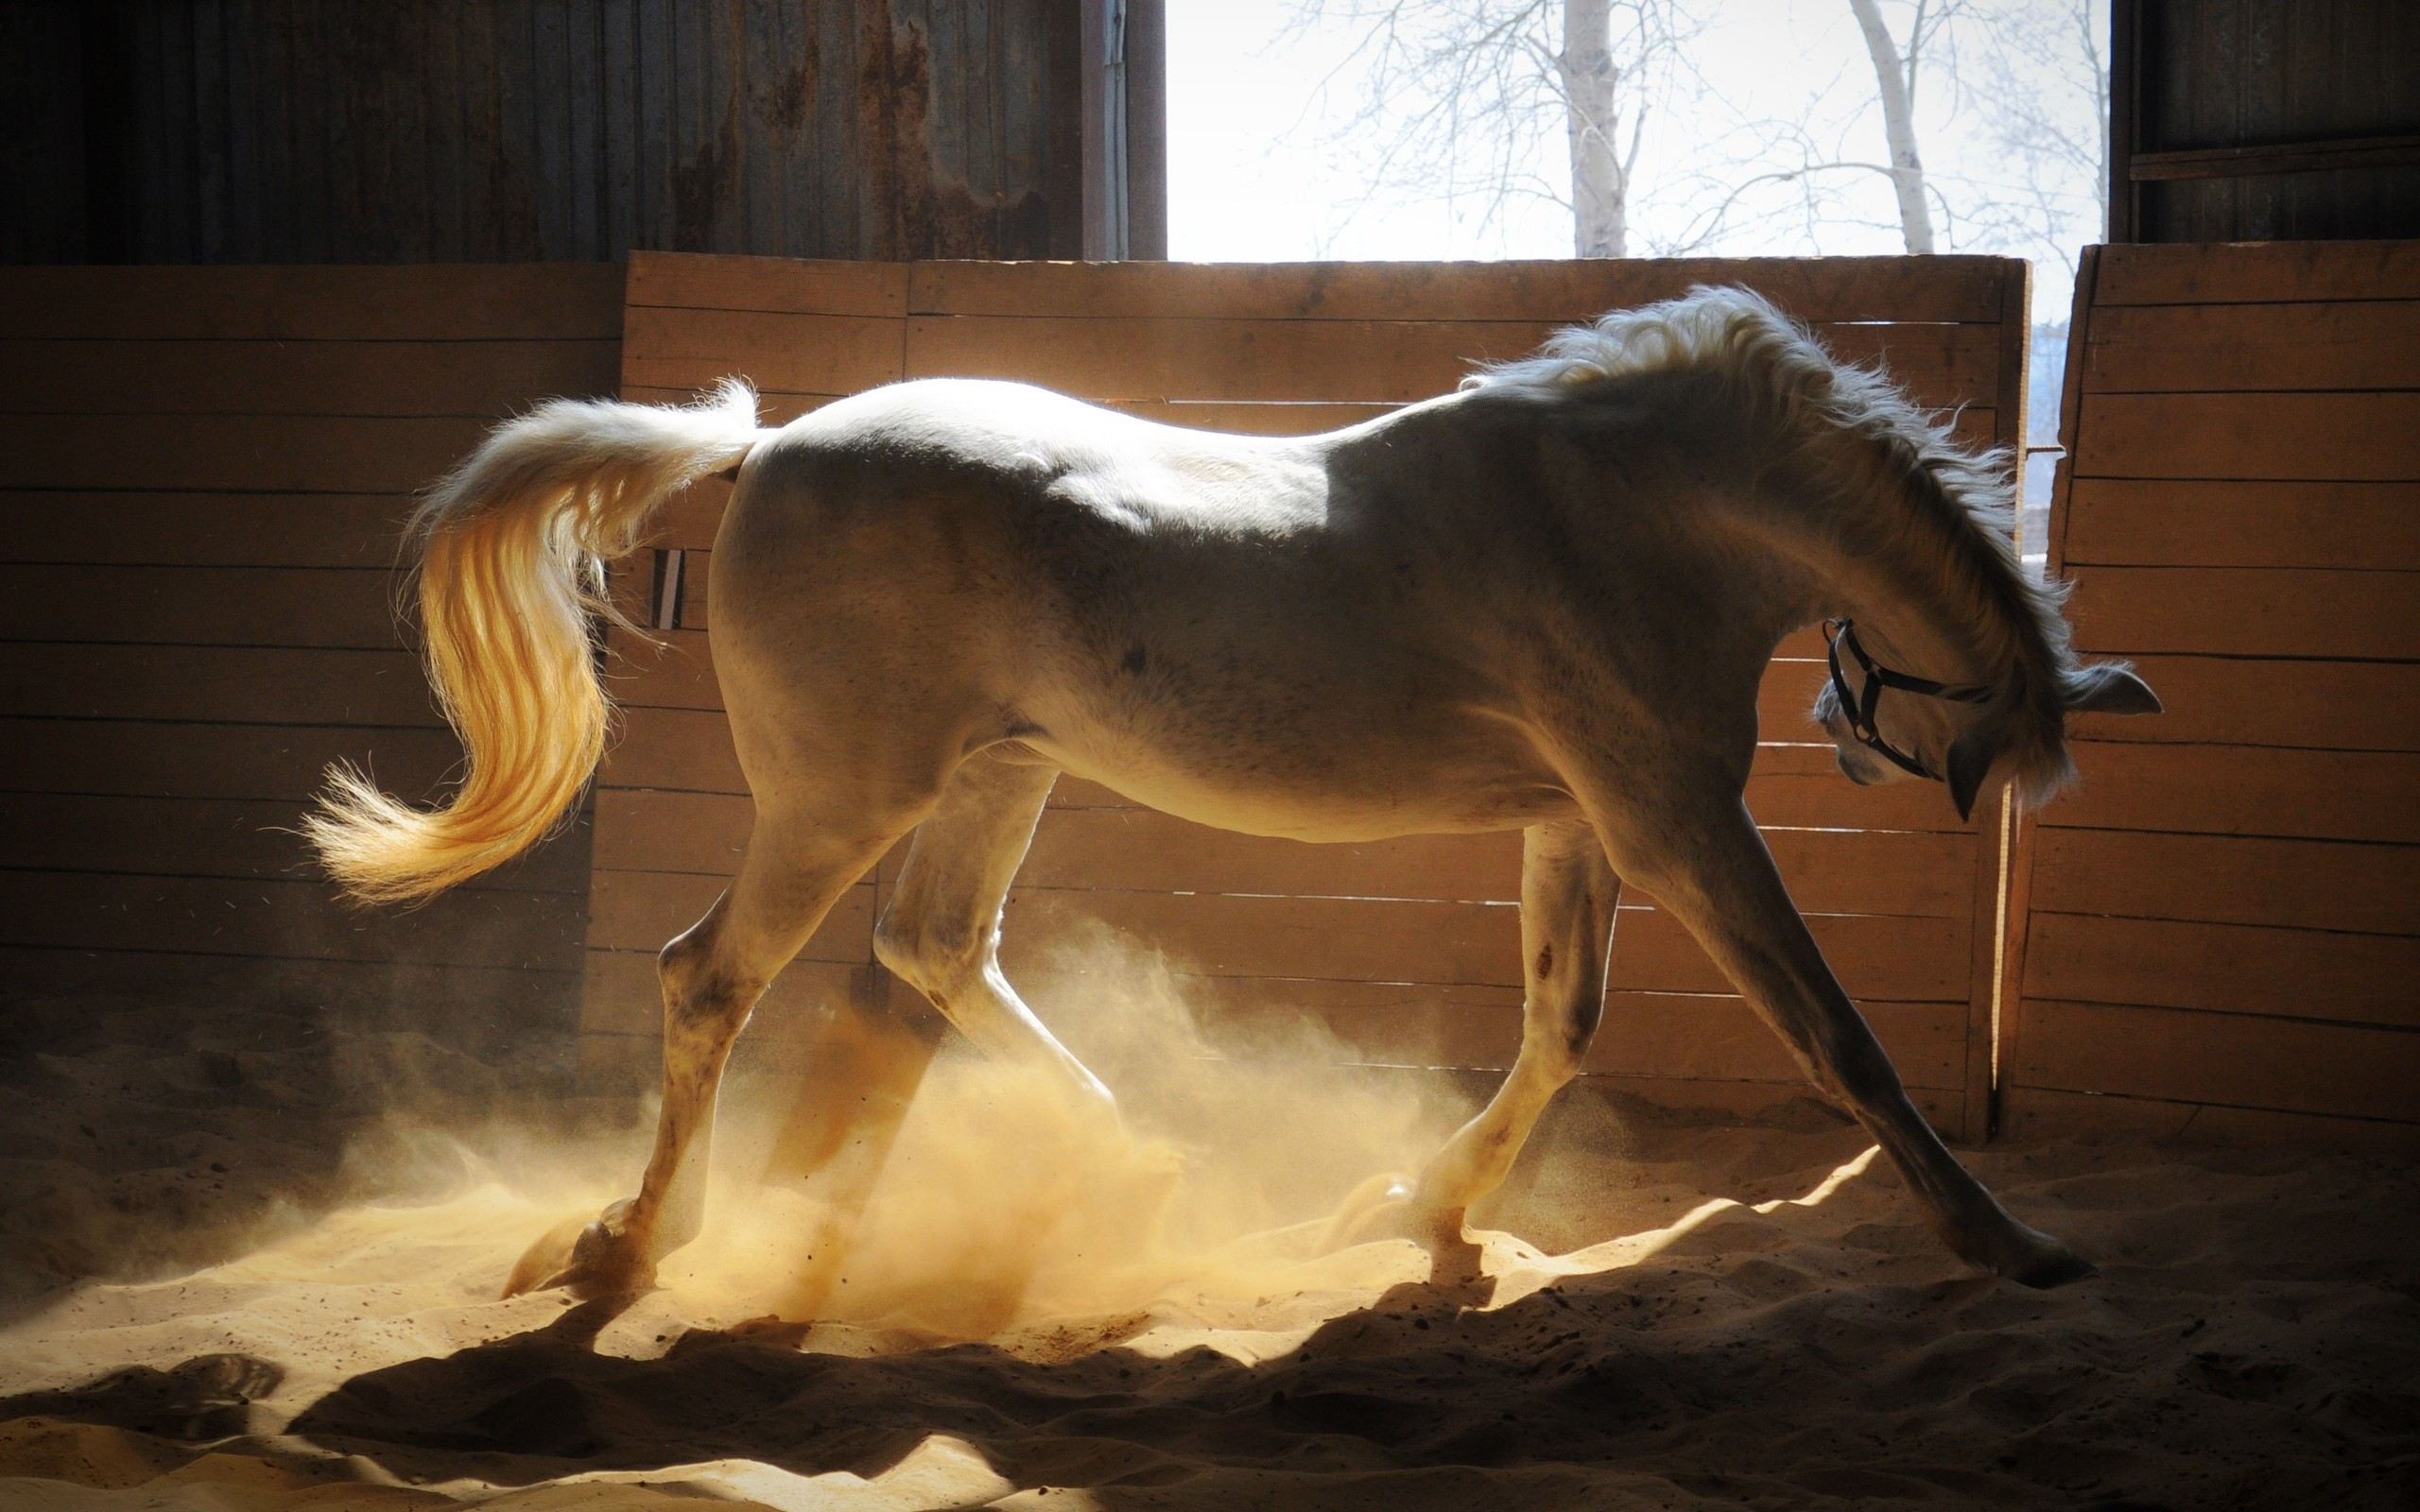 1360x768 Adorable White Horse Laptop Hd Hd 4k Wallpapers Images Backgrounds Photos And Pictures